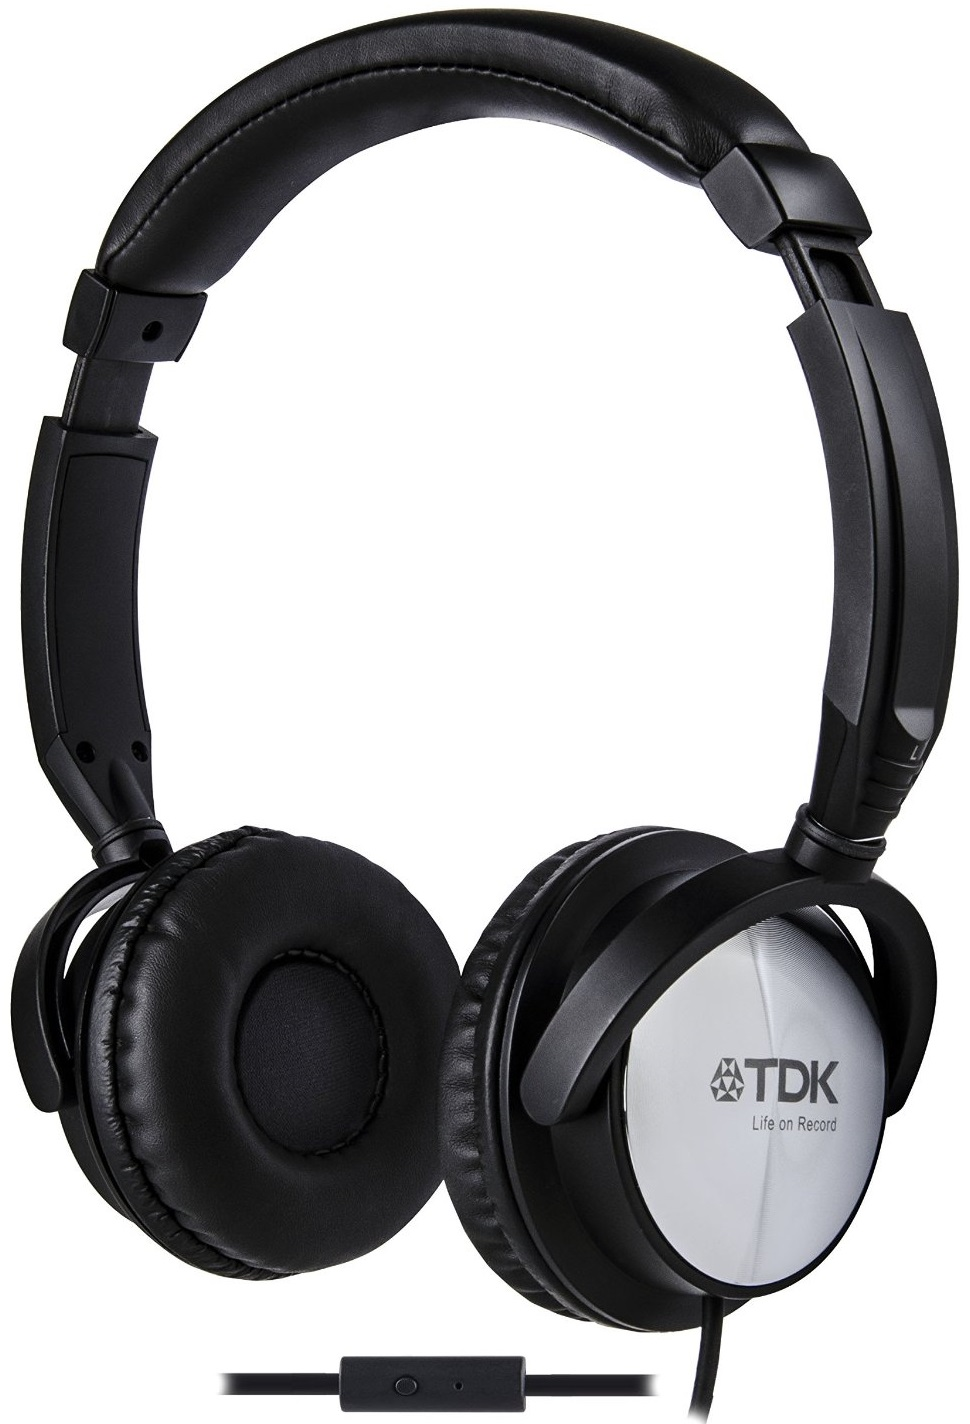 tdk st170 over ear headphones black with microphone mic ebay. Black Bedroom Furniture Sets. Home Design Ideas